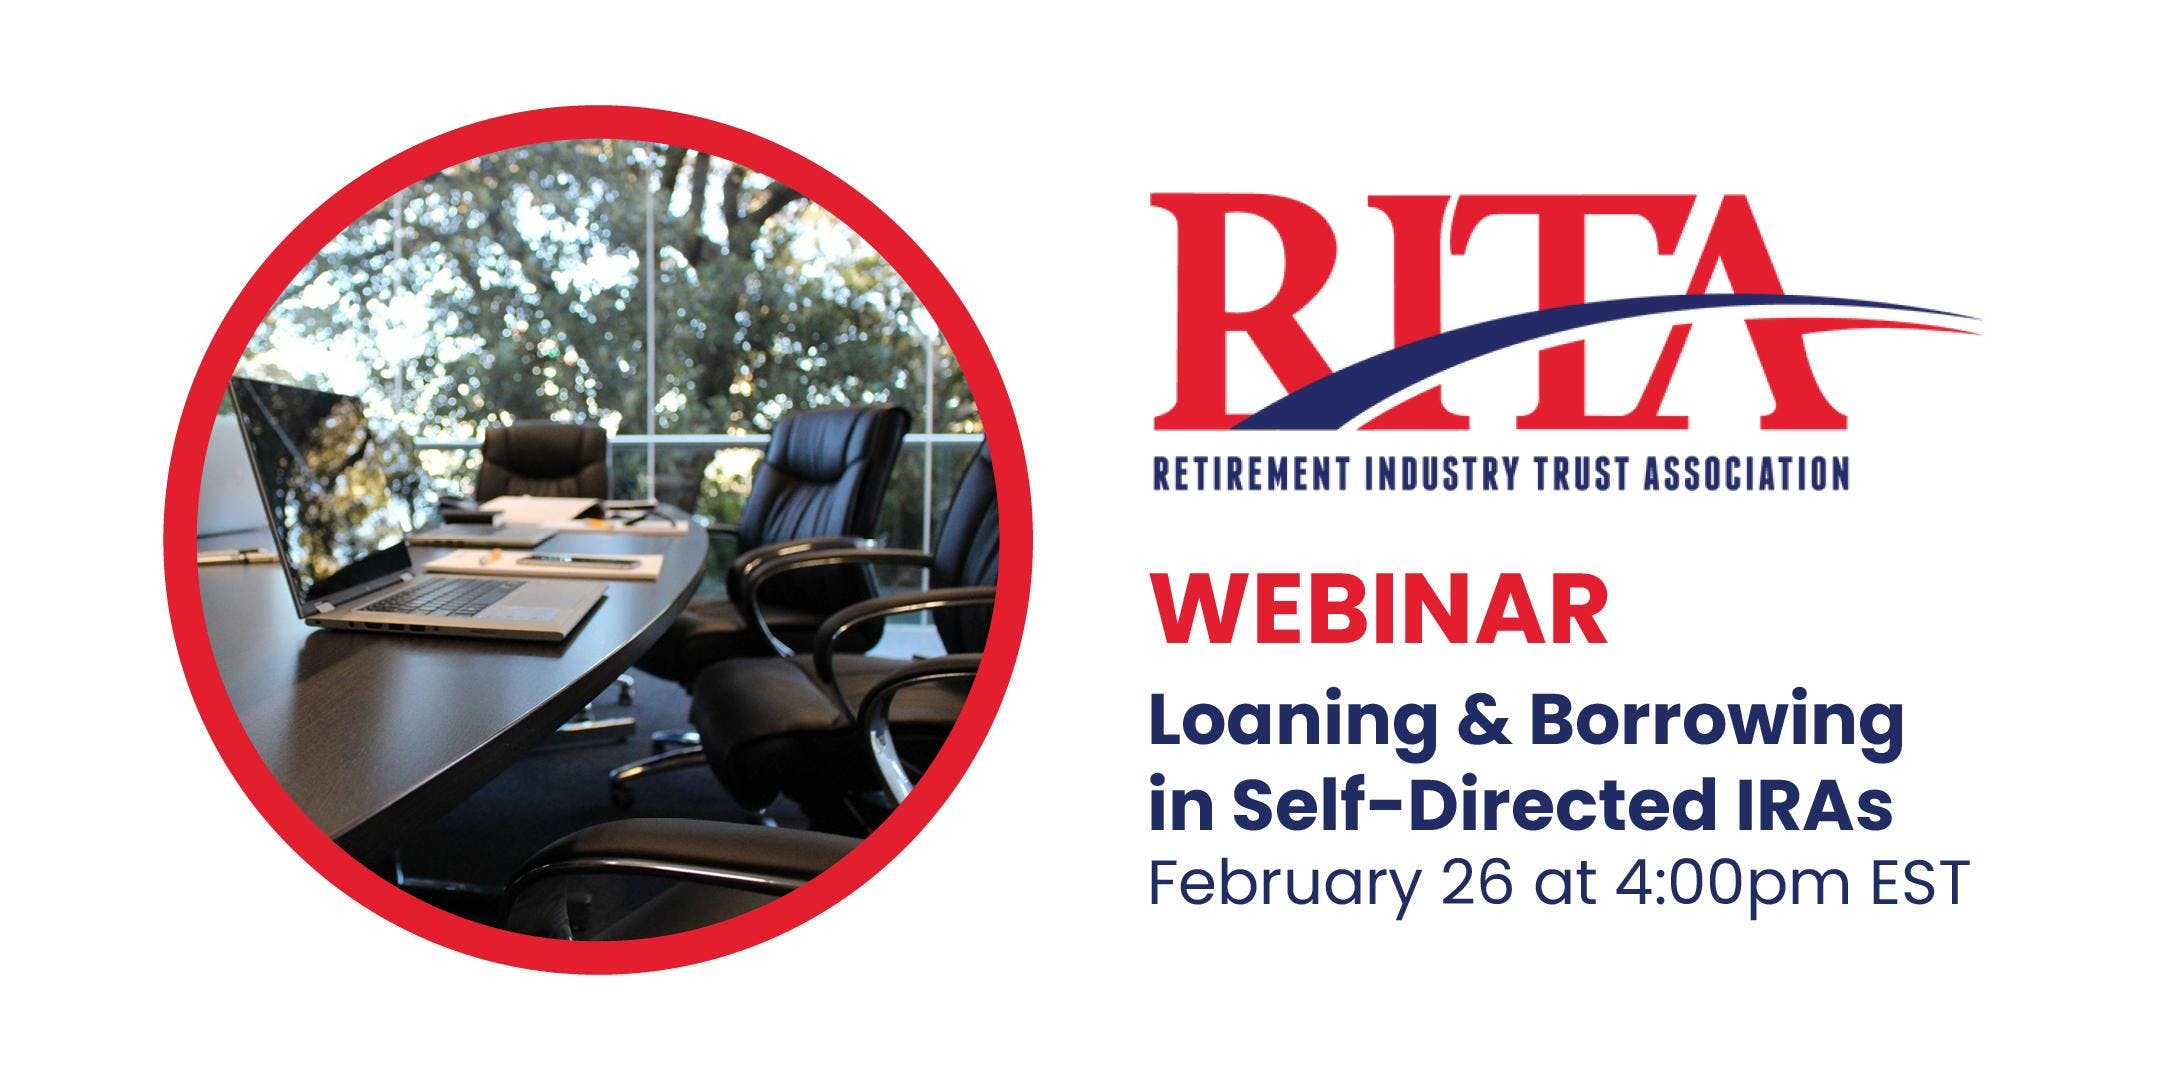 RITA Webinar - Loaning & Borrowing in Self-Directed IRAs